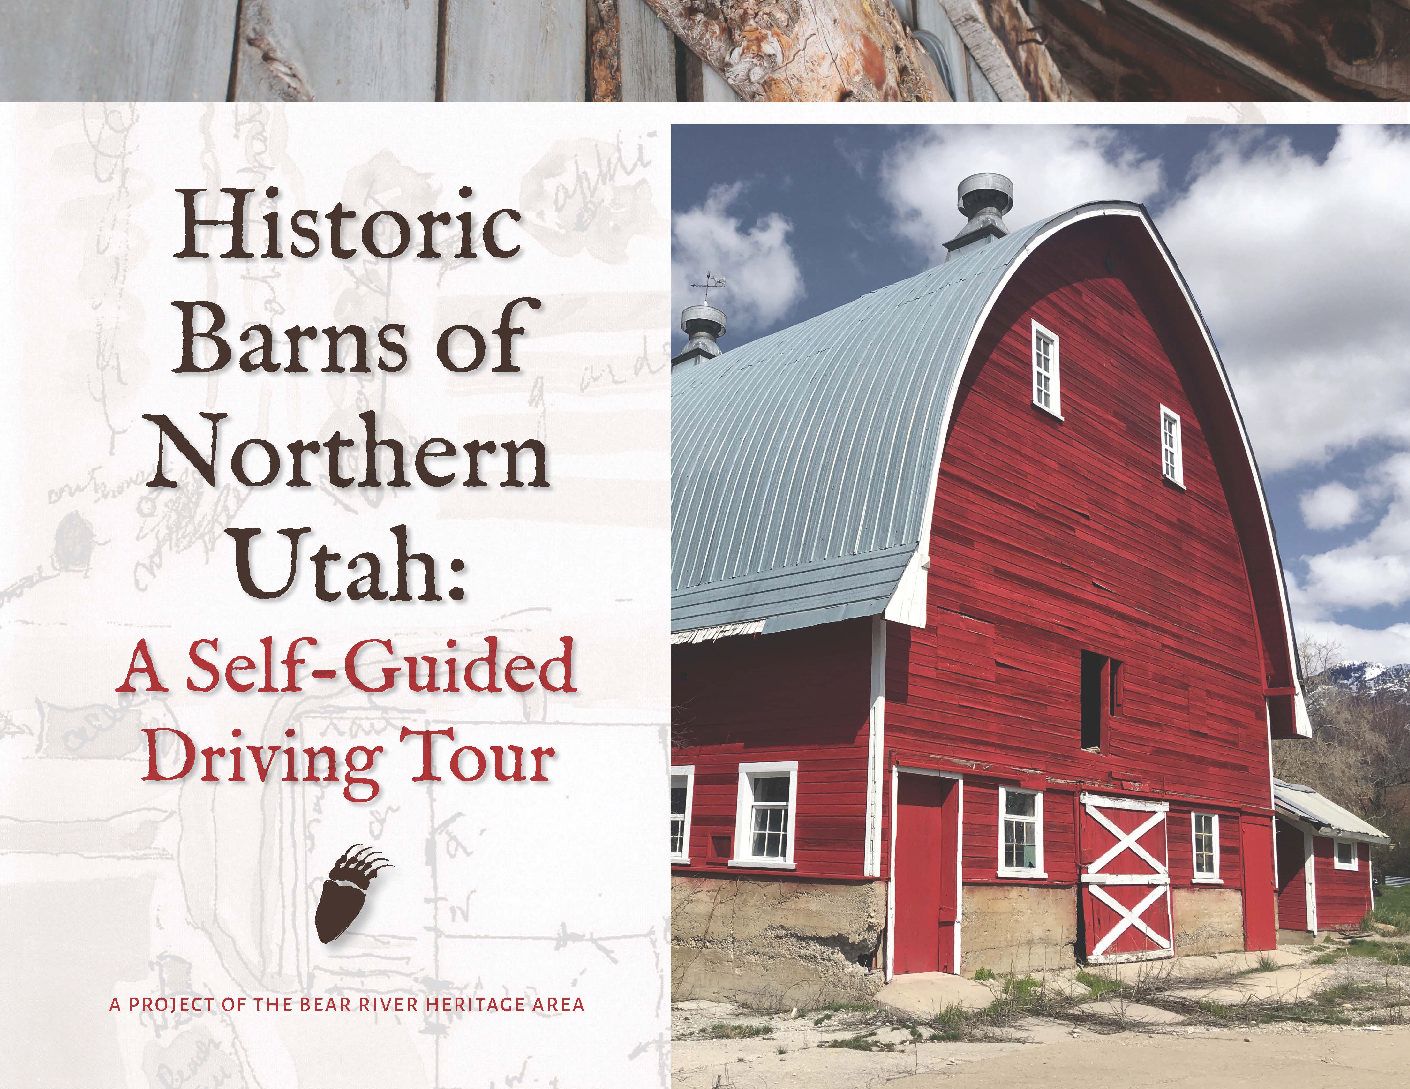 2017 Edition of Historic Barns of Northern Utah: A Self-Guided Driving Tour